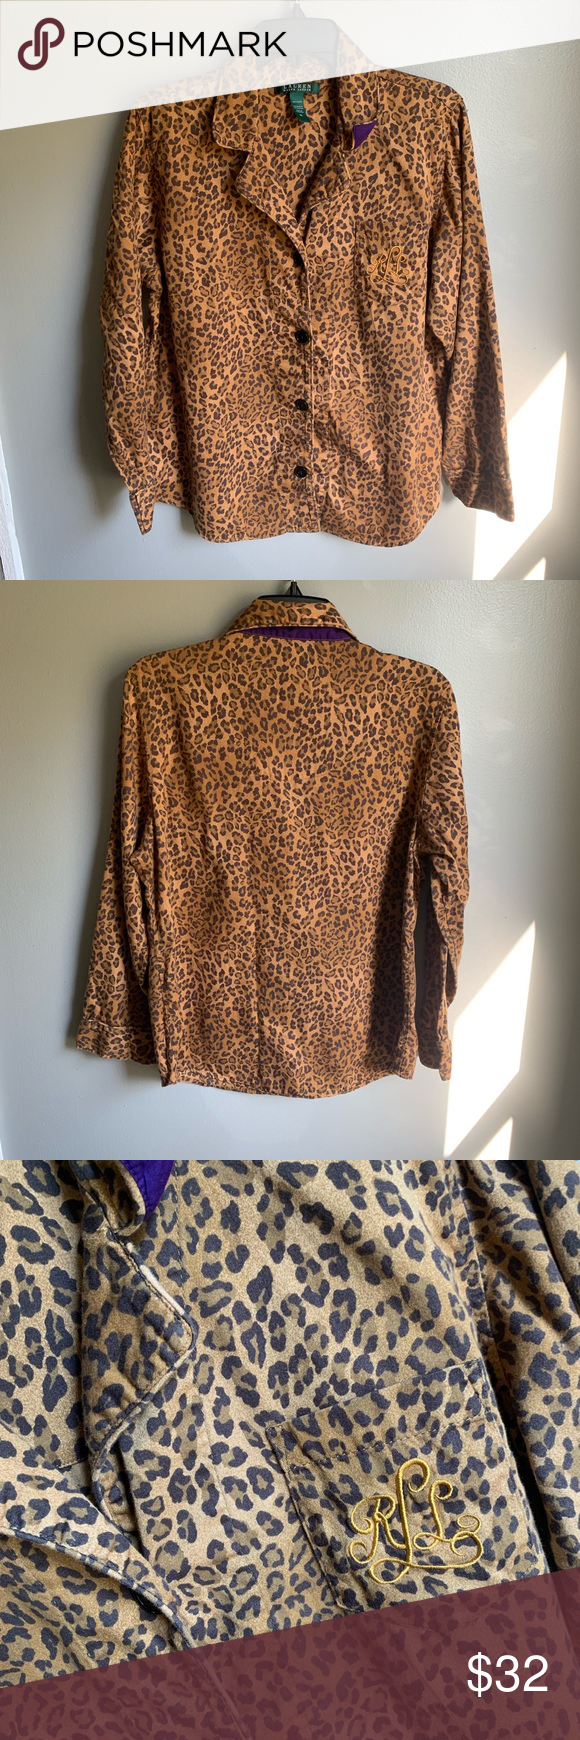 Ralph Lauren Embroider Logo Leopard Blouse XL 100% soft cotton flannel blouse with embroidered RLL on chest pocket. Big oversized buttons. Wear this to the office or with your best ripped skinny jeans and ankle boots for an on trend outfit. Lauren Ralph Lauren Tops Blouses #skinnyjeansandankleboots